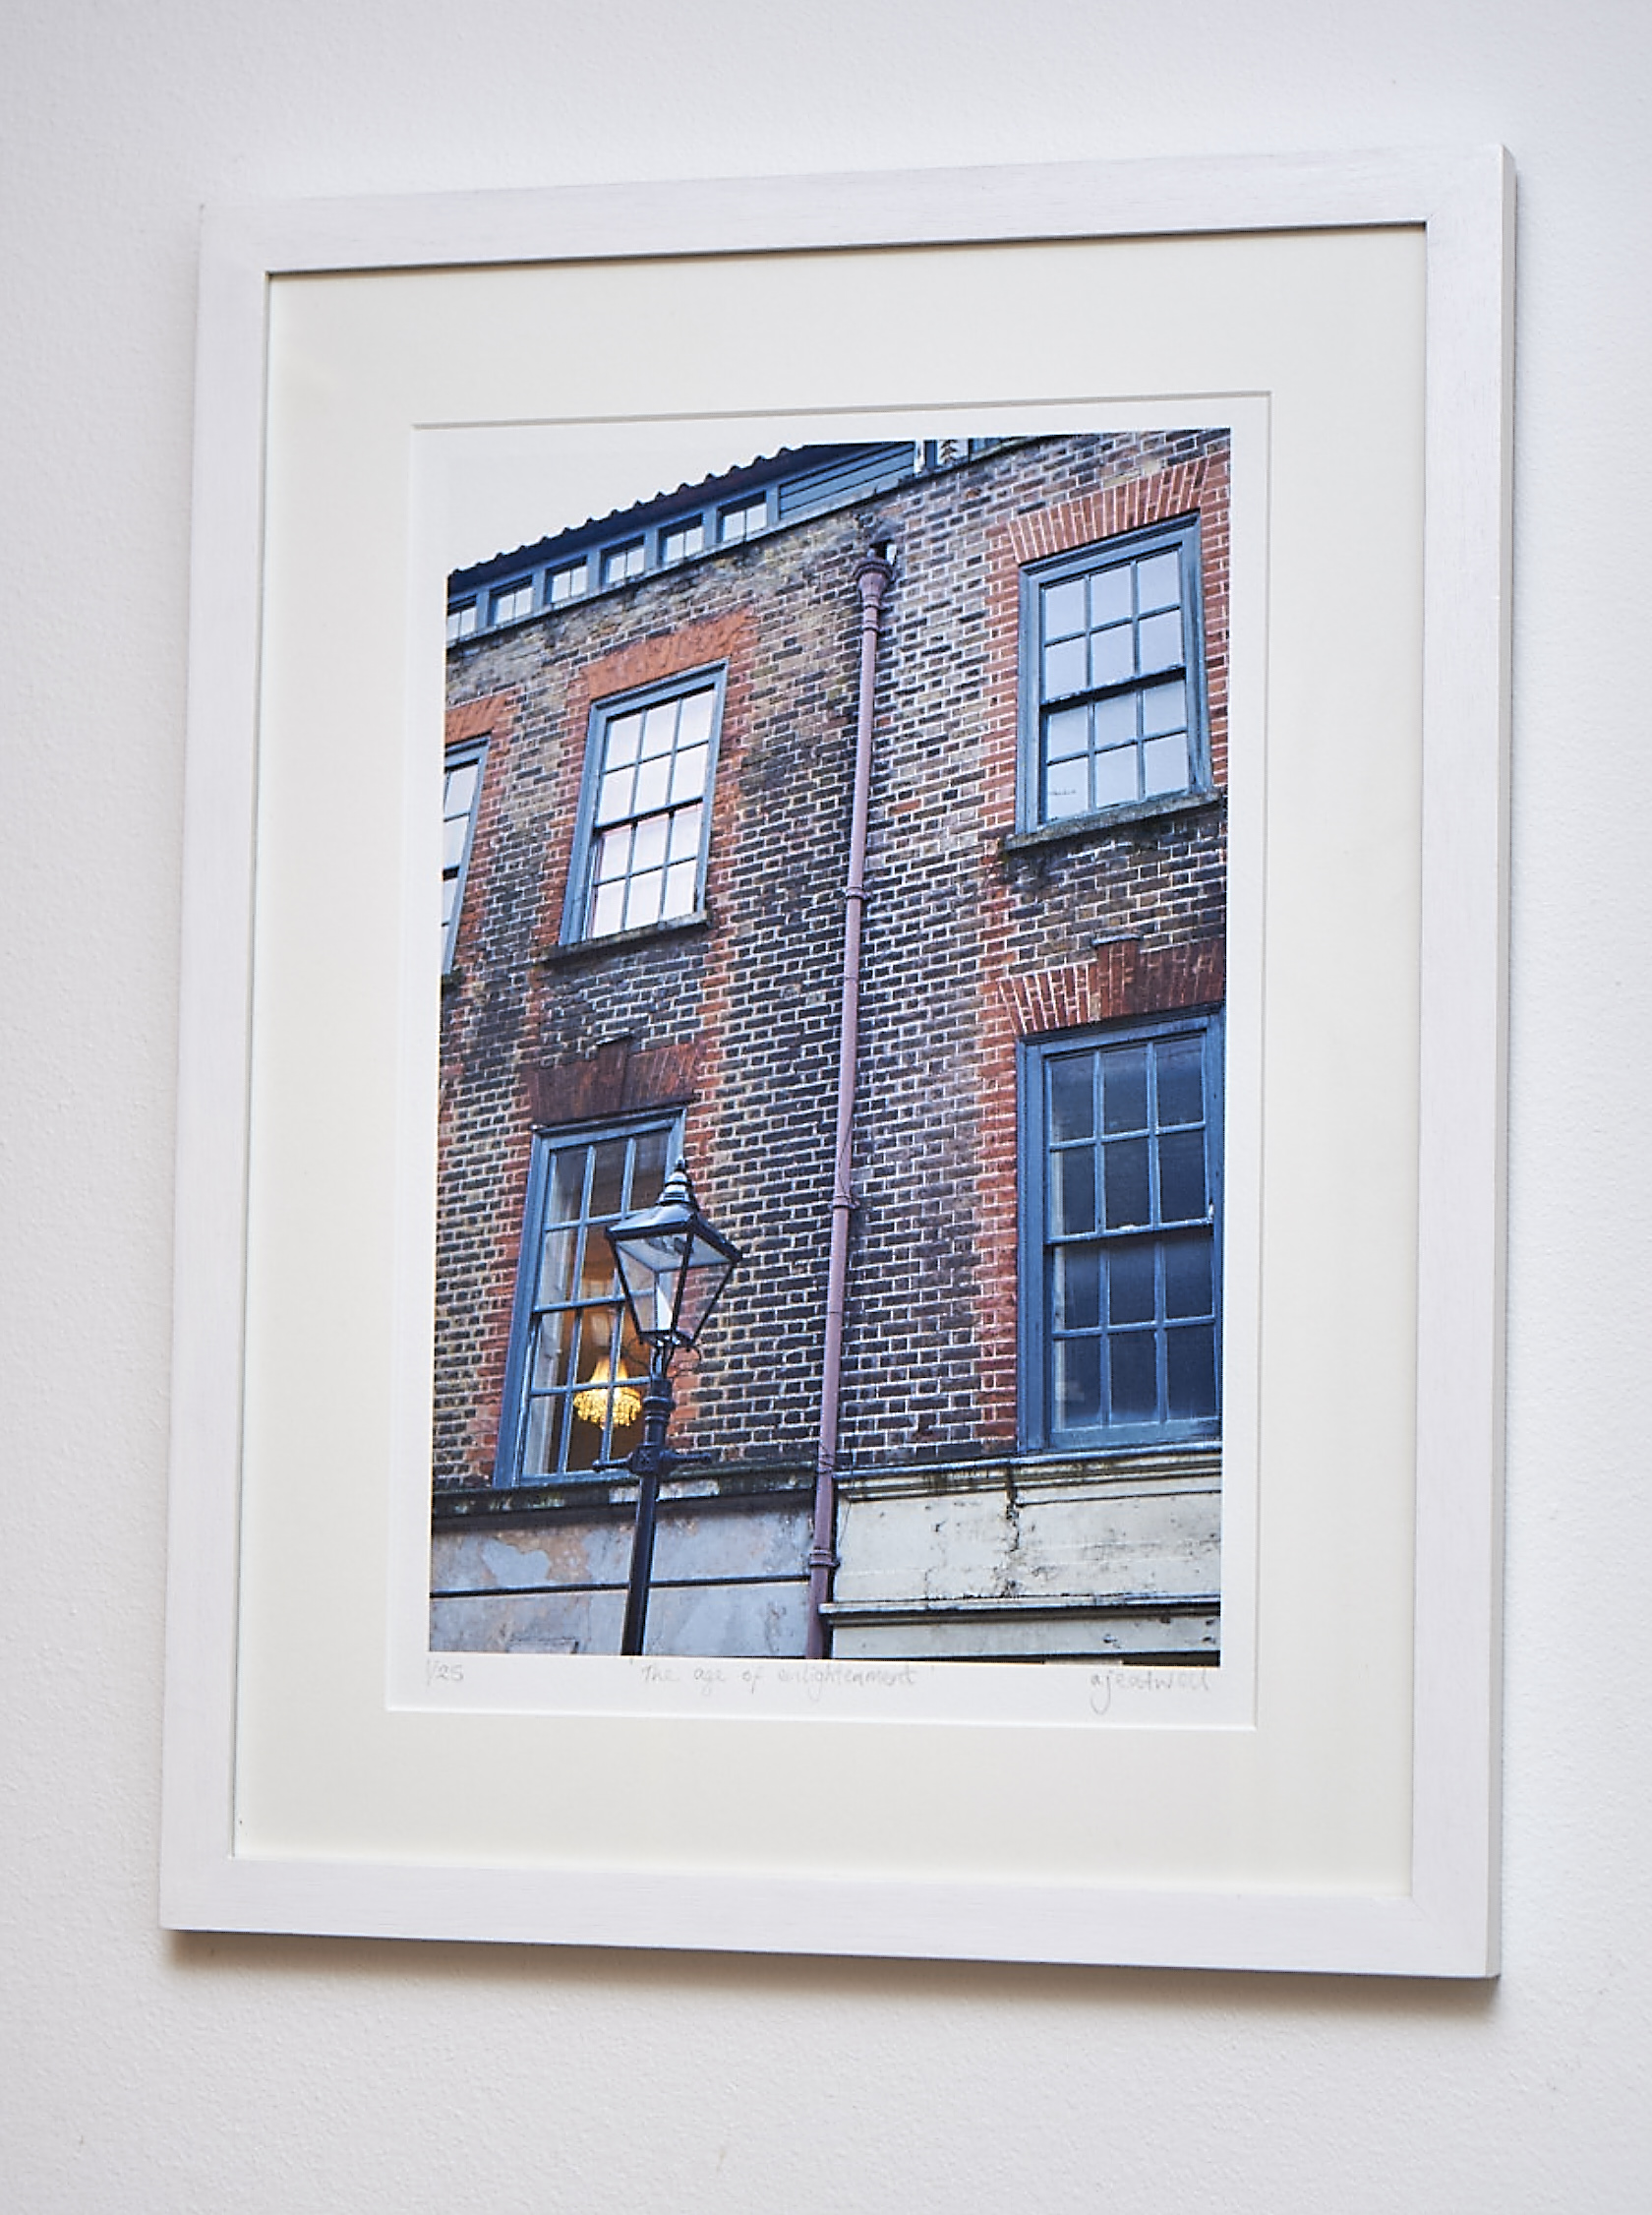 """The Age of Enlightenment   This image was originally displayed alongside a portrait of an old man (see below): something about the connection between old people and old places.  Digital Image printed on Hahnemuhle German Etching Paper.   Frame Size approx. 20 x 15""""    COST £45.00"""